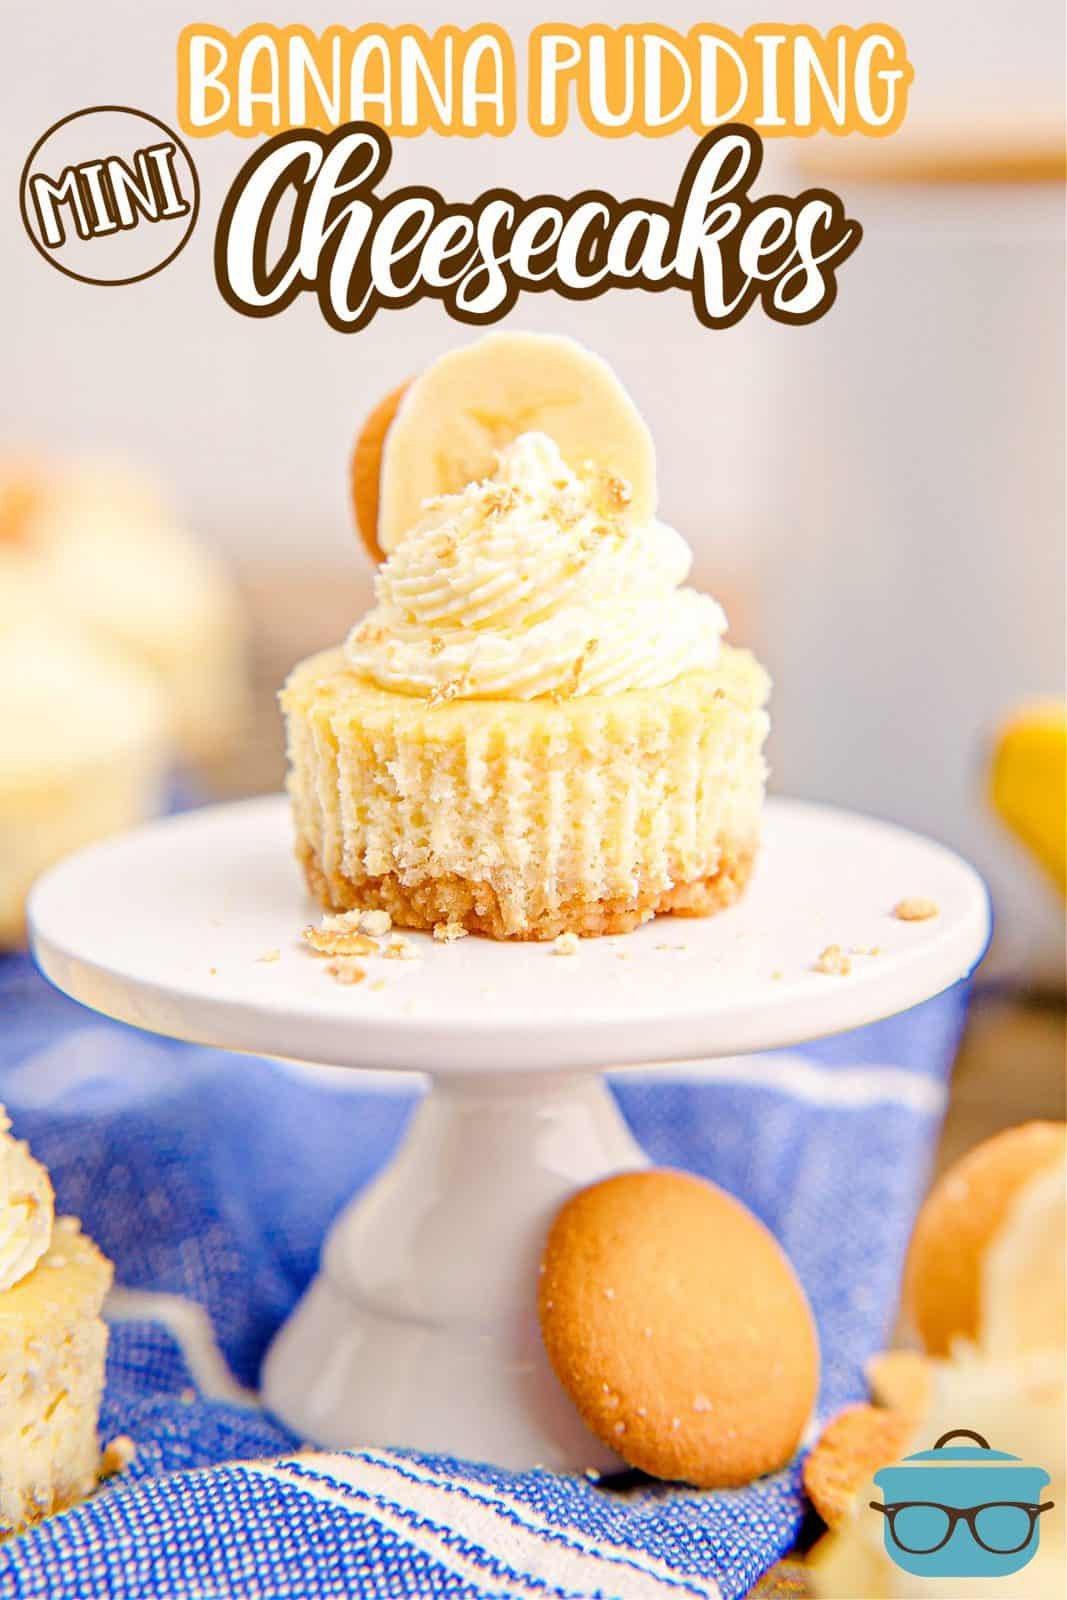 Pinterest image of decorated Mini Banana Pudding Cheesecake on white stand with cheesecakes behind it.